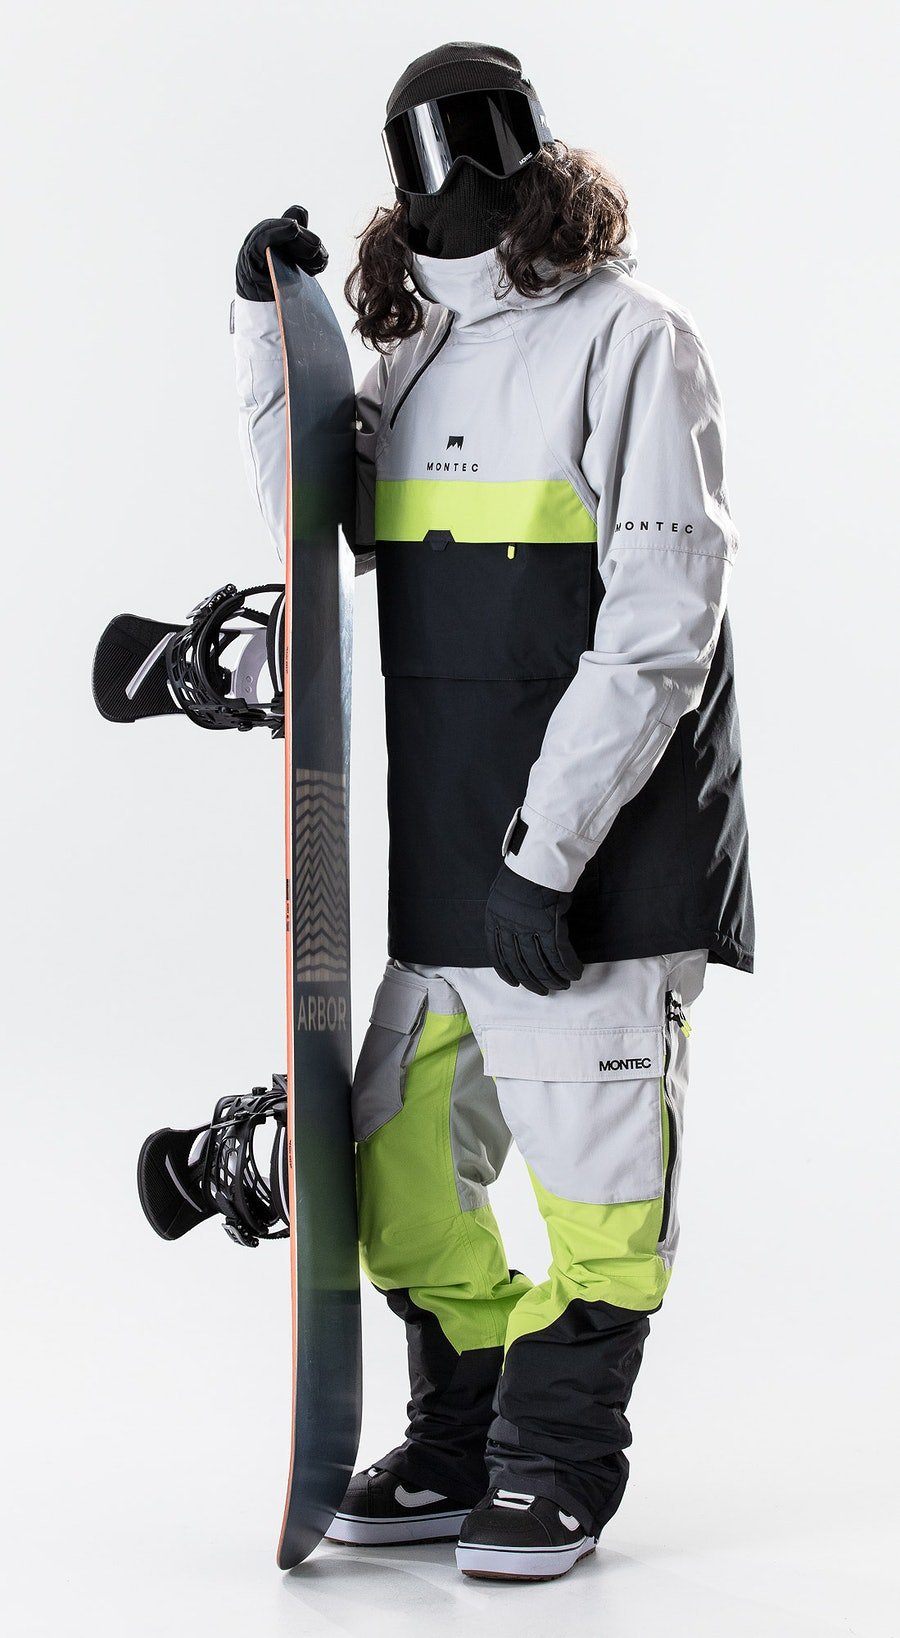 Montec Dune Light Grey/Neon Yellow/Black Snowboardkläder Multi